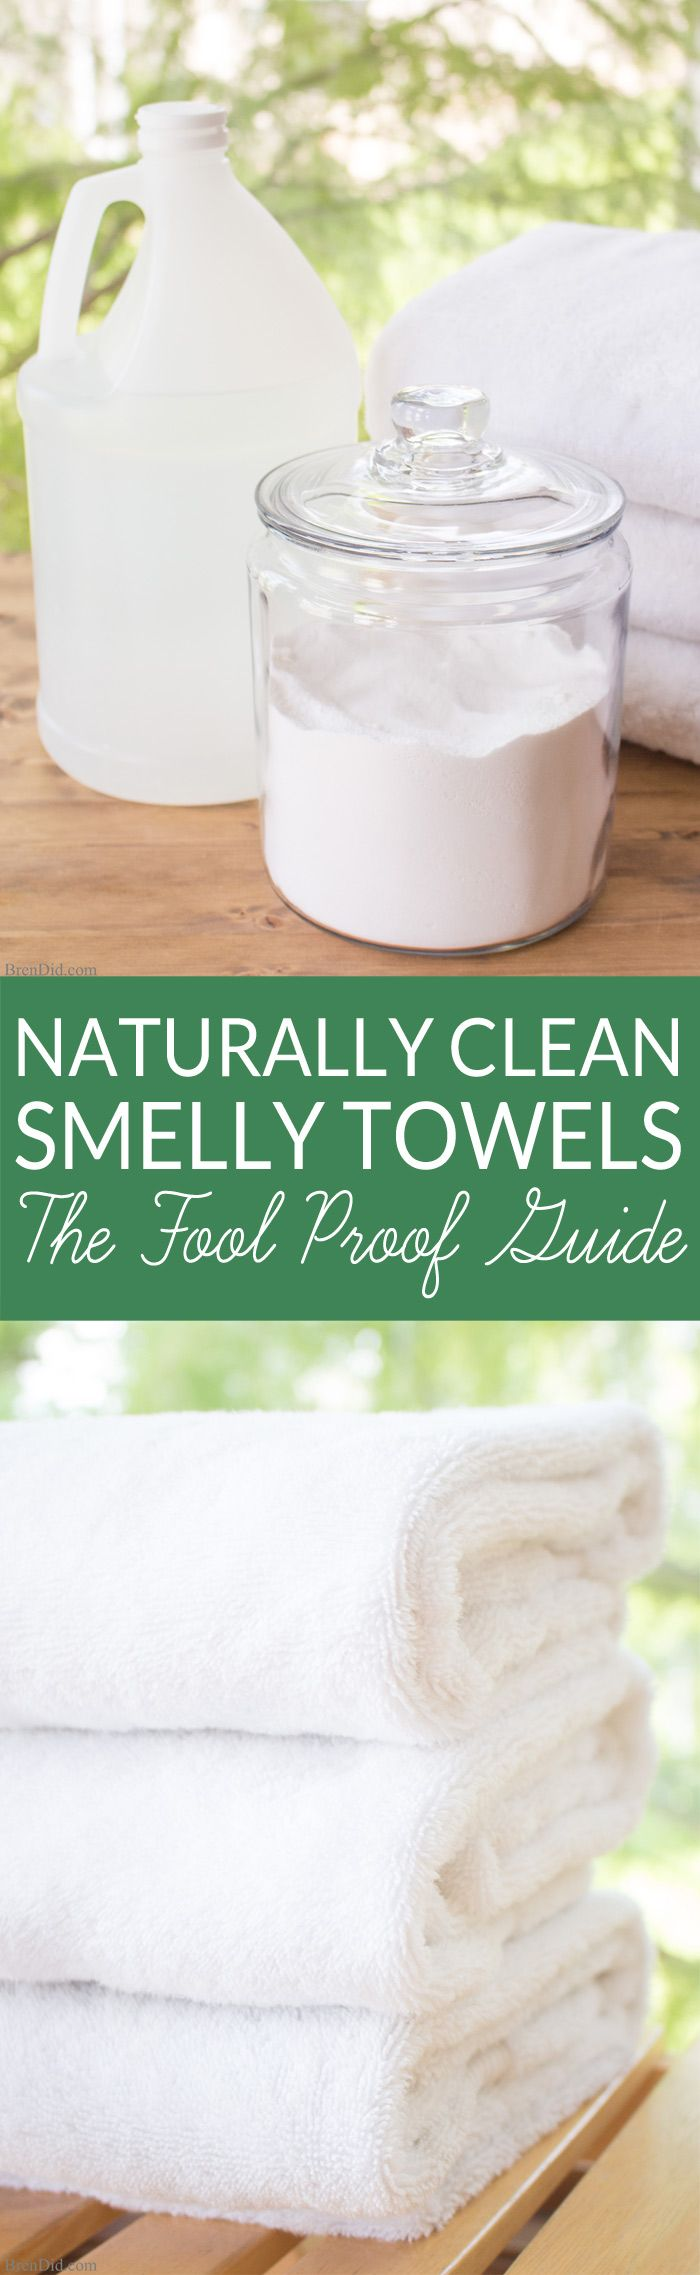 How to Naturally Clean Smelly Towels: the Fool Proof Guide